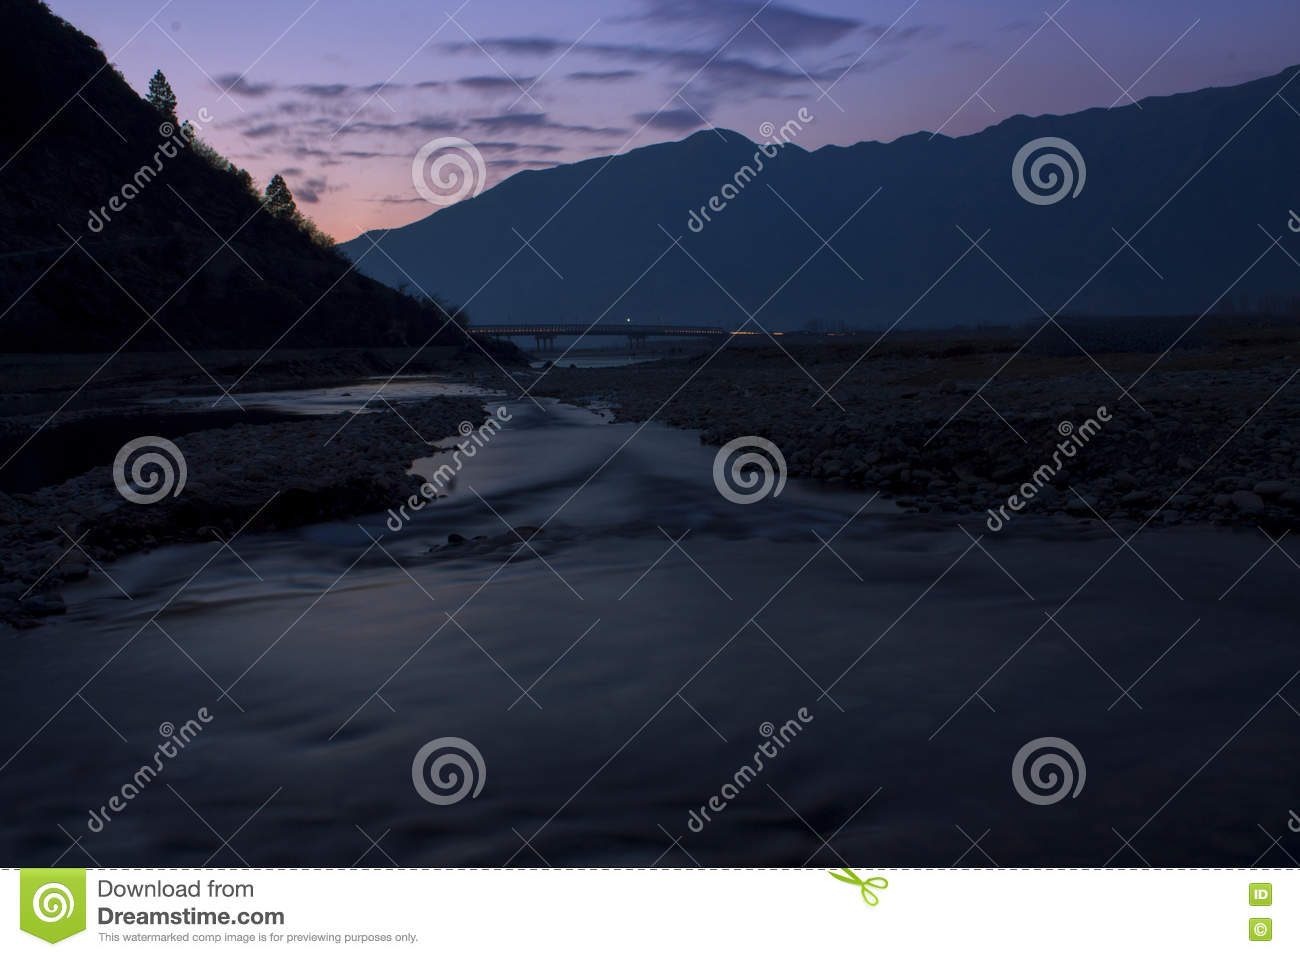 A night view of Swat River